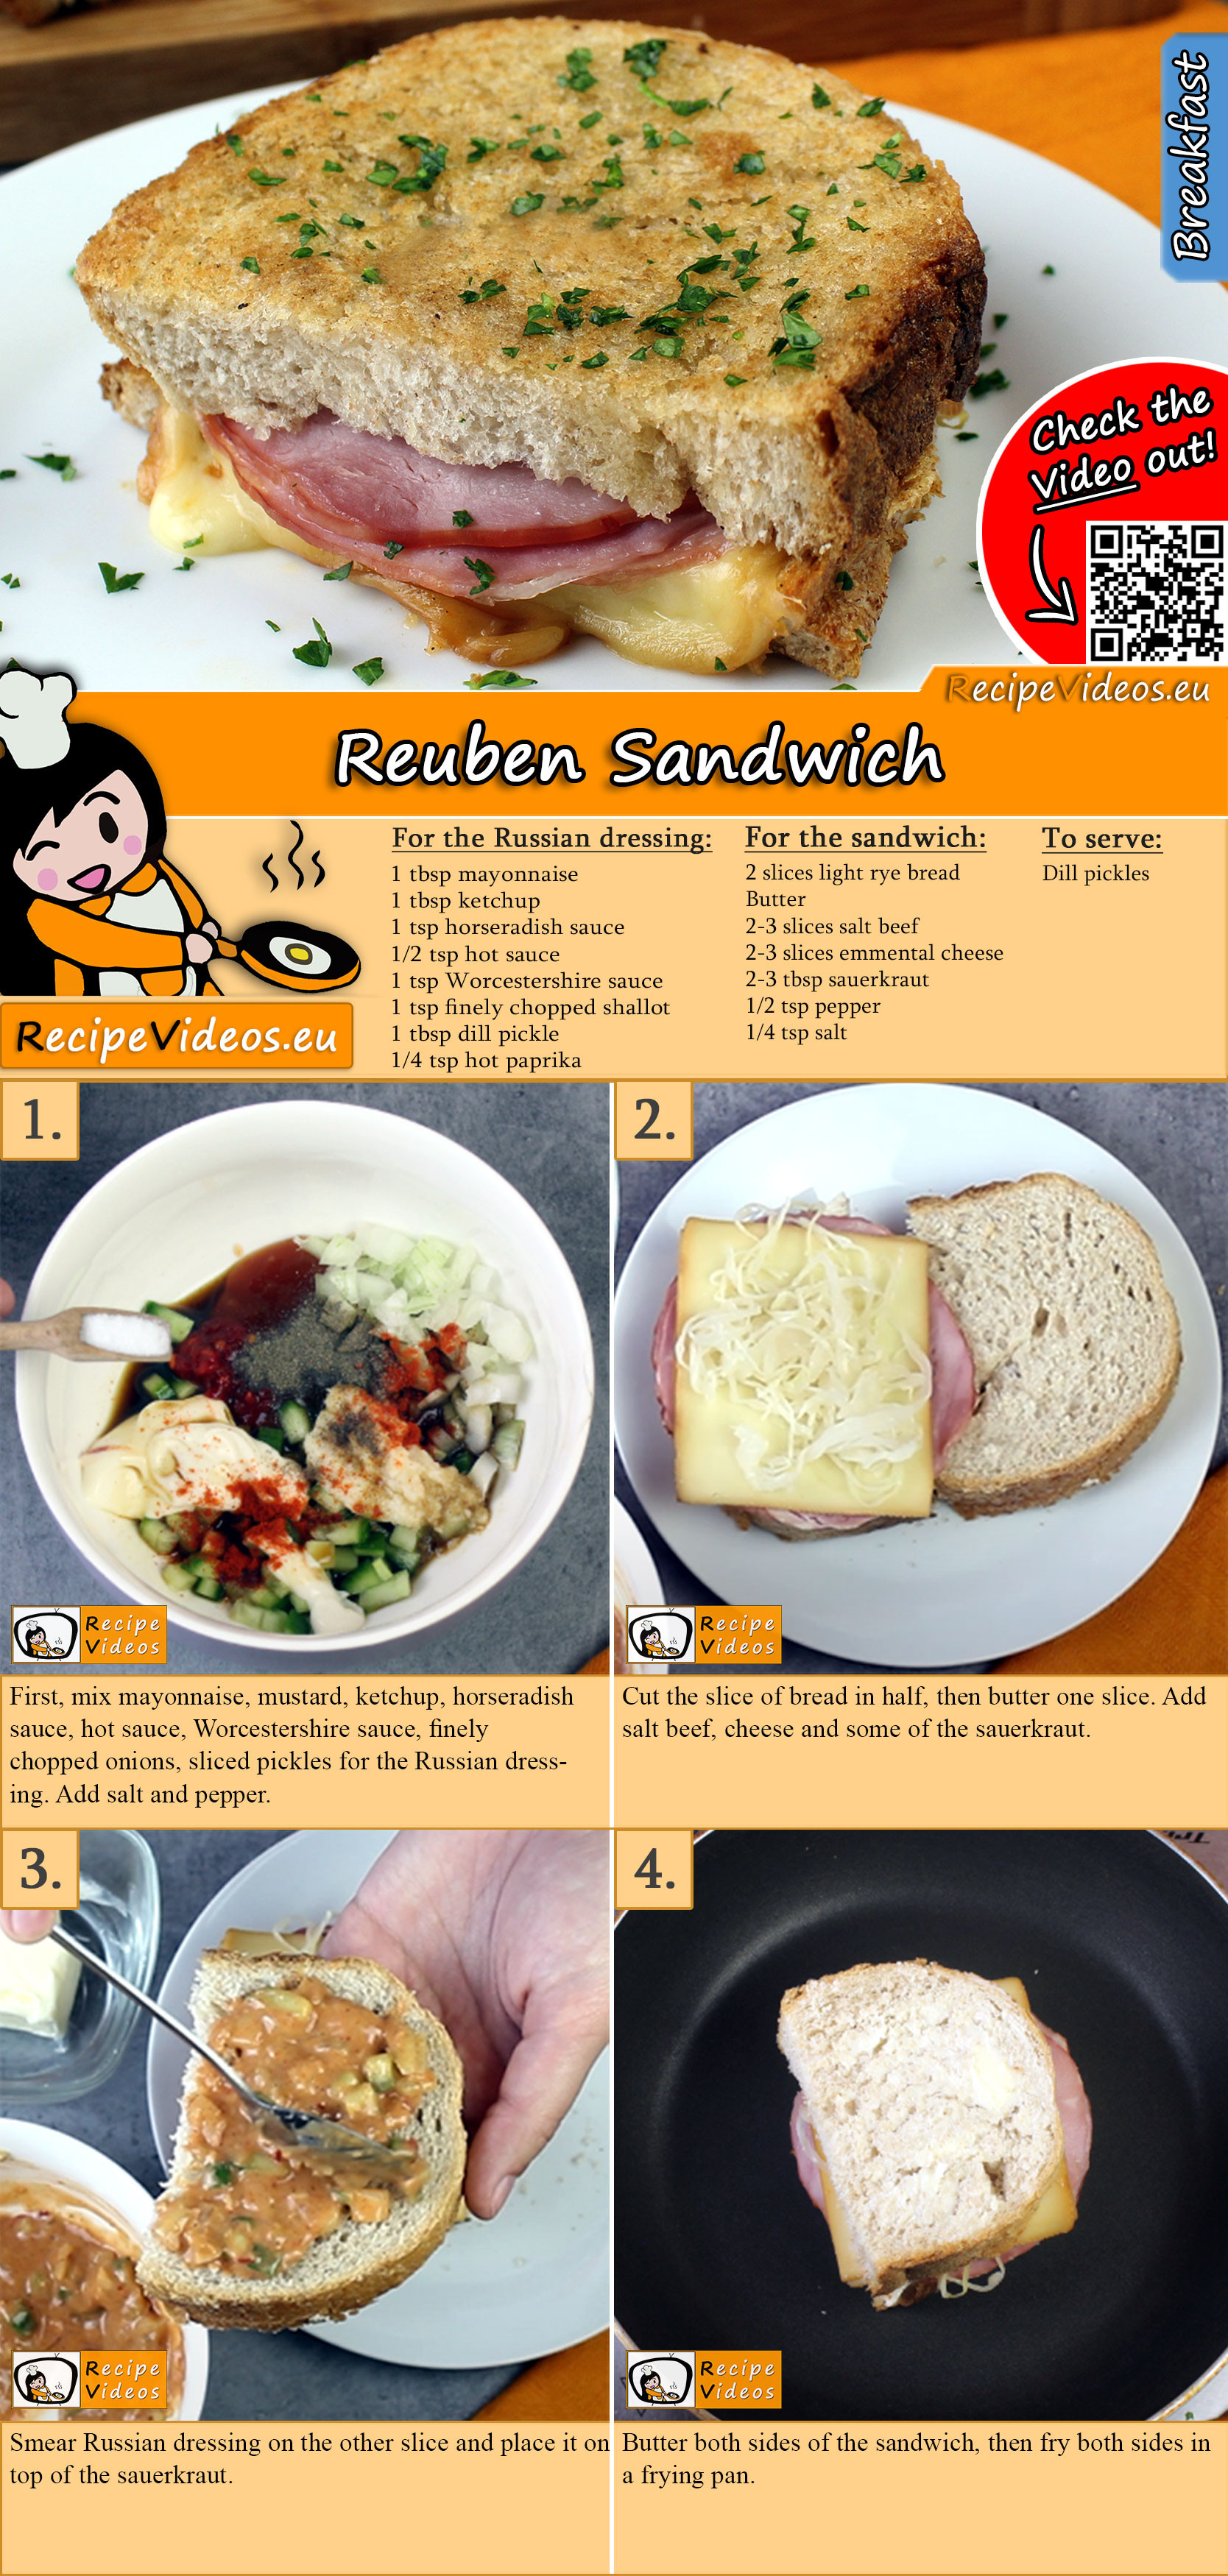 Reuben Sandwich recipe with video